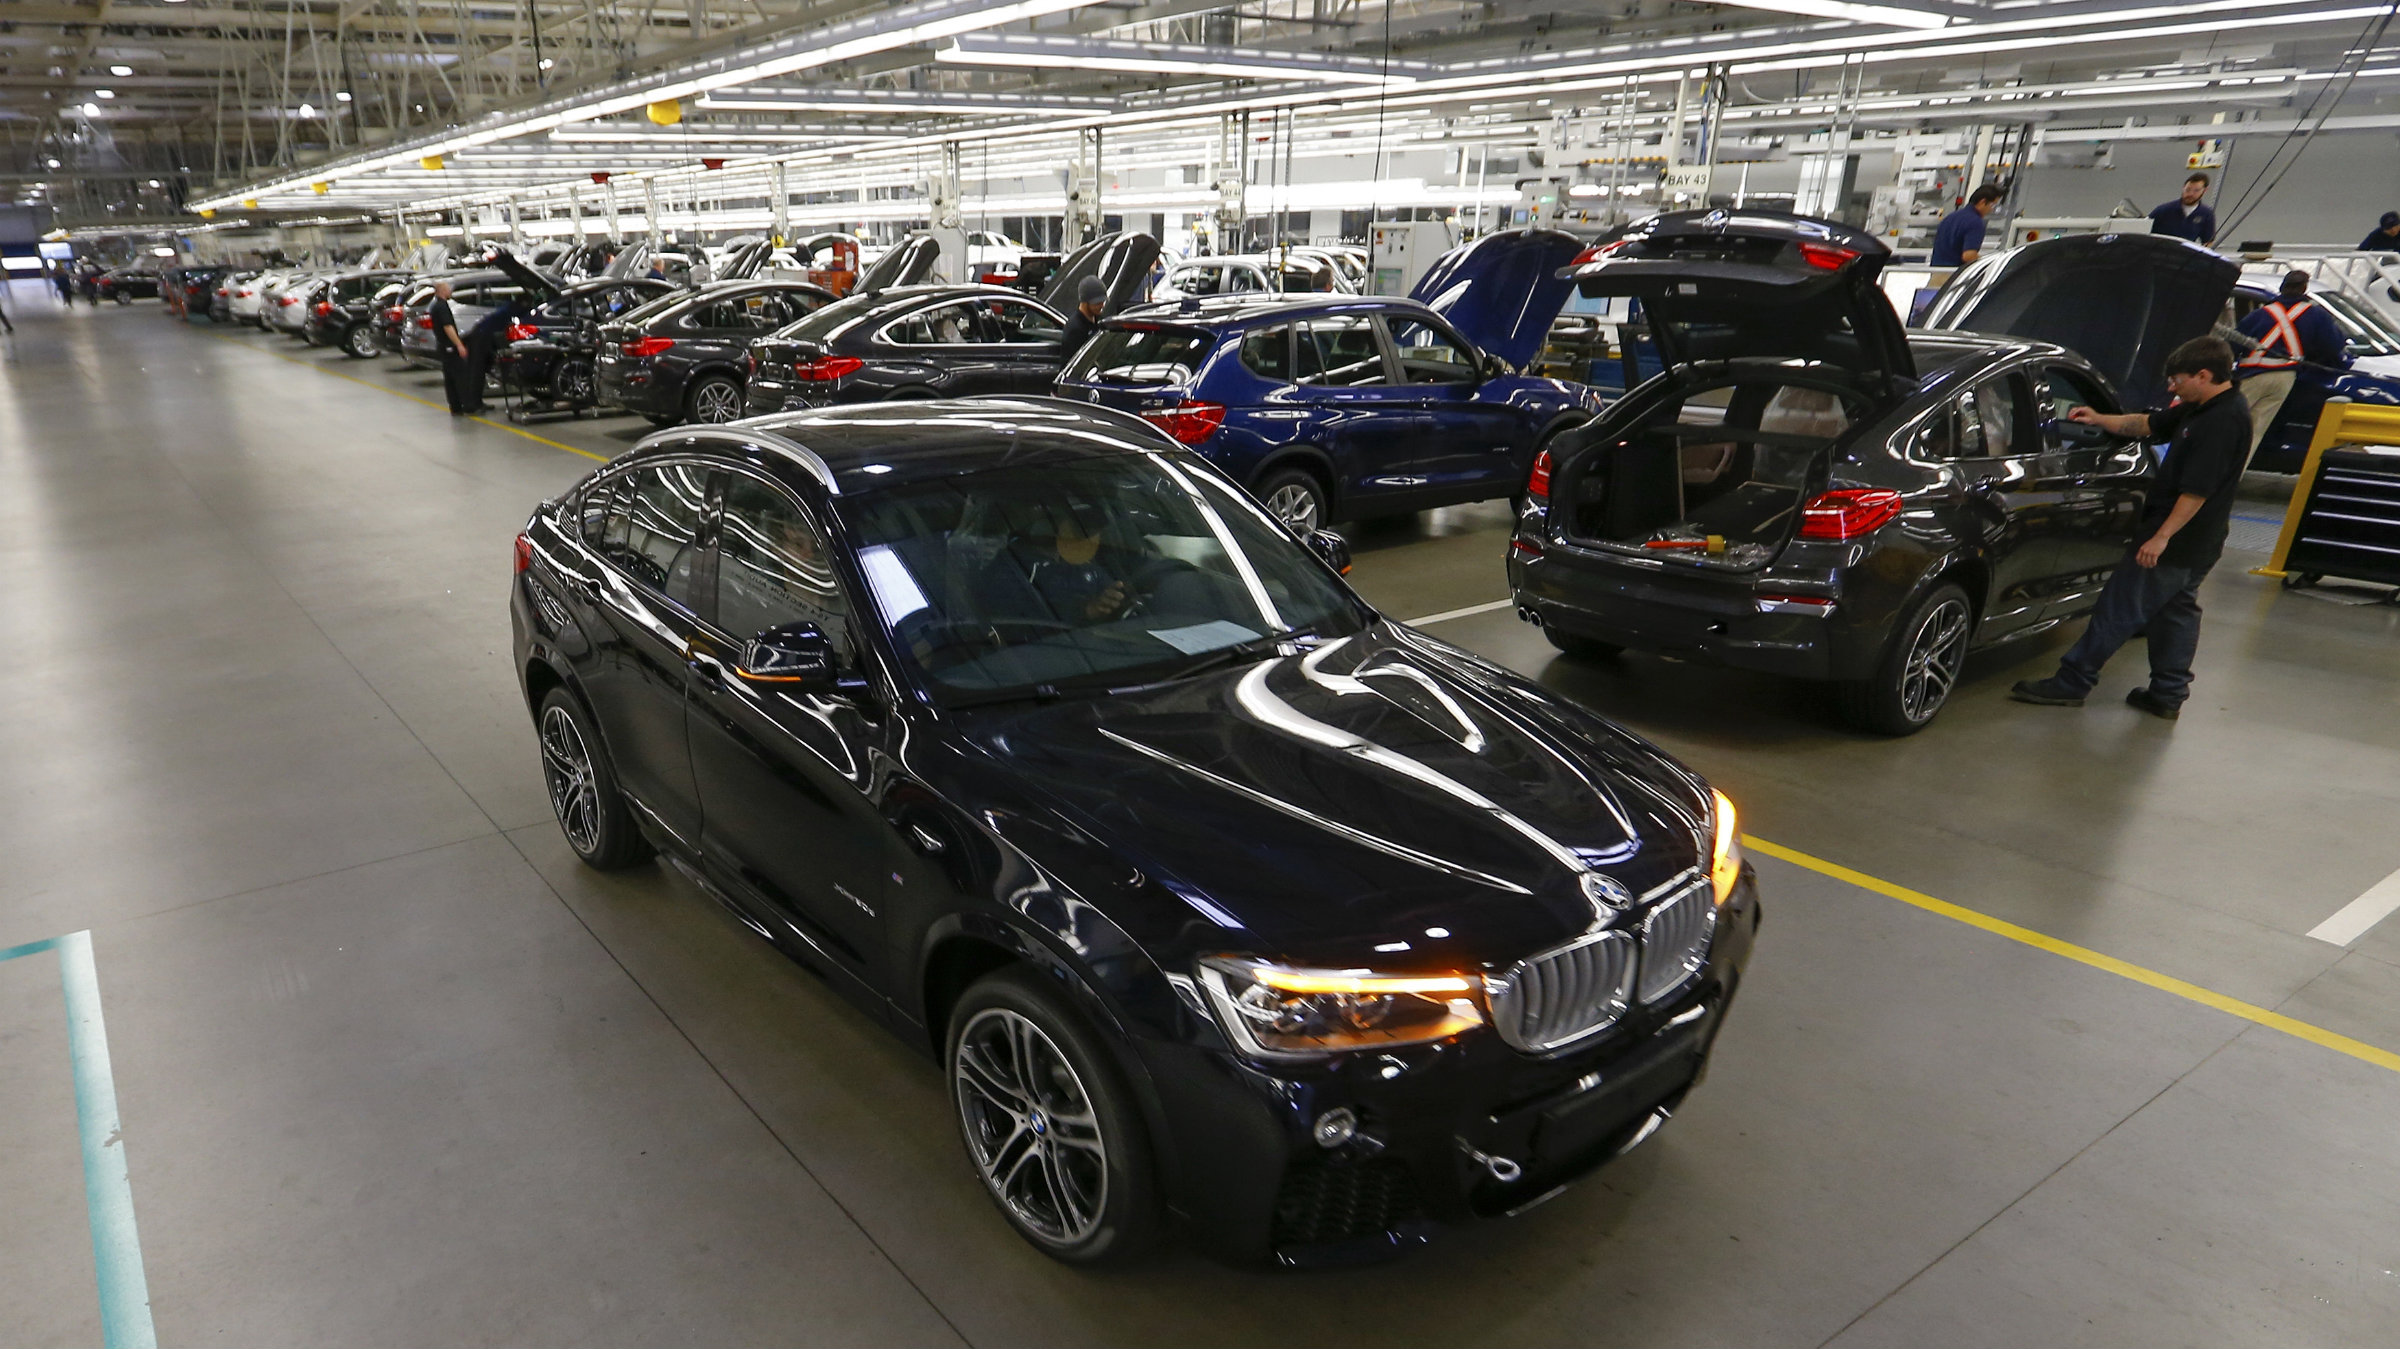 A finished BMW X4 is driven off the production line at the BMW manufacturing plant in Spartanburg, South Carolina.